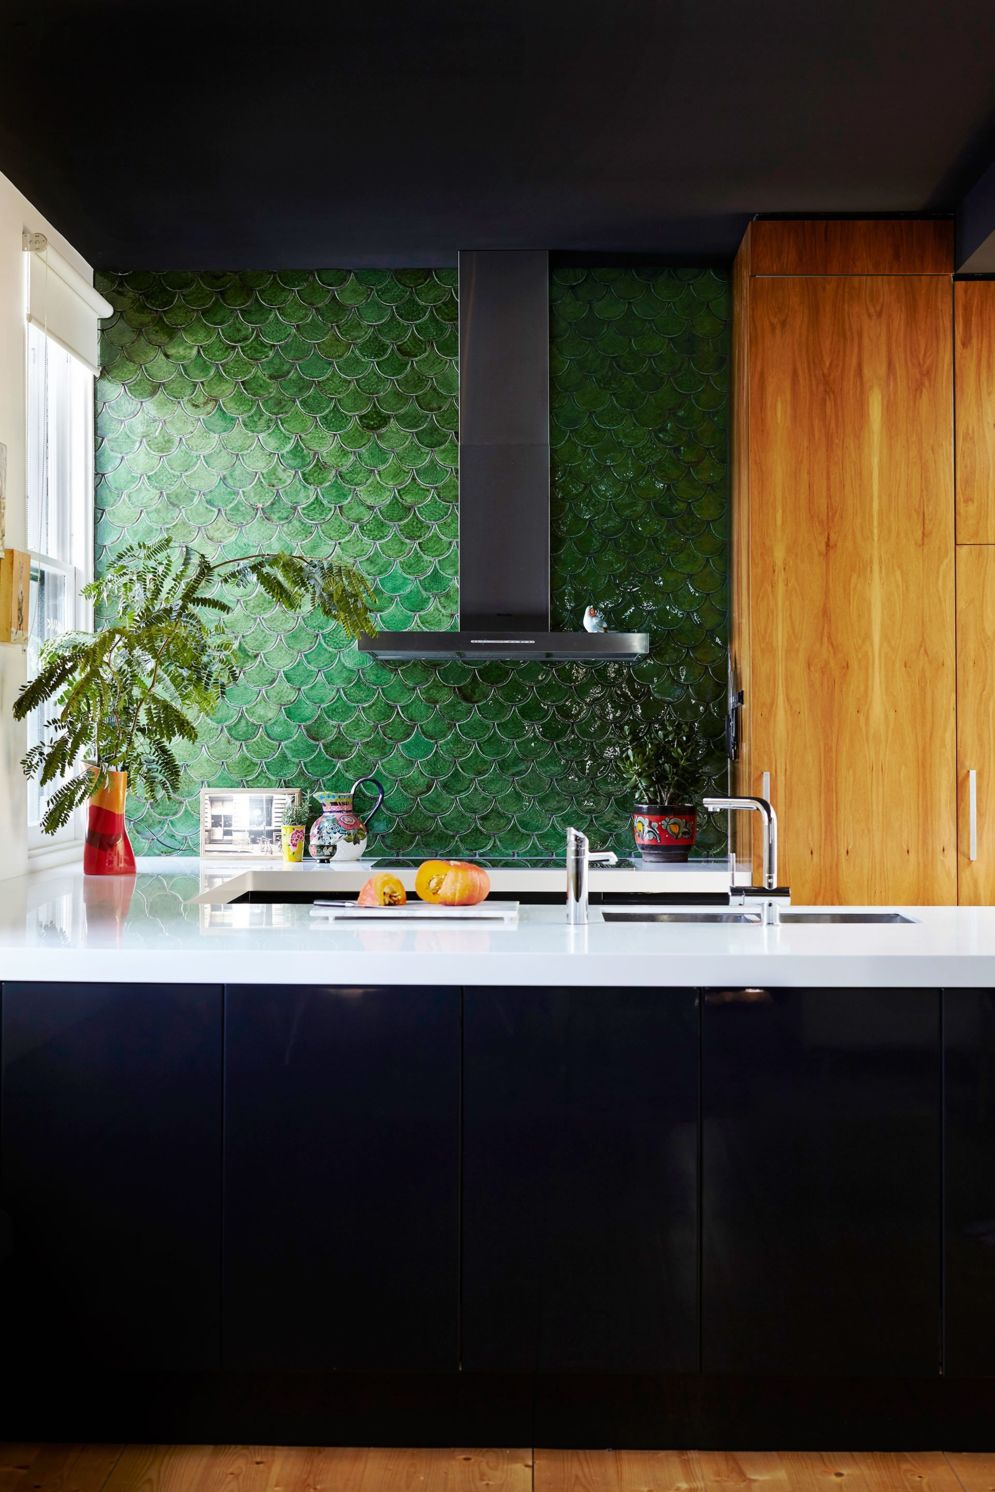 Breathtaking backsplash ideas for artistic kitchen appearance showing beautiful ethnic and stylish patterns Image 22